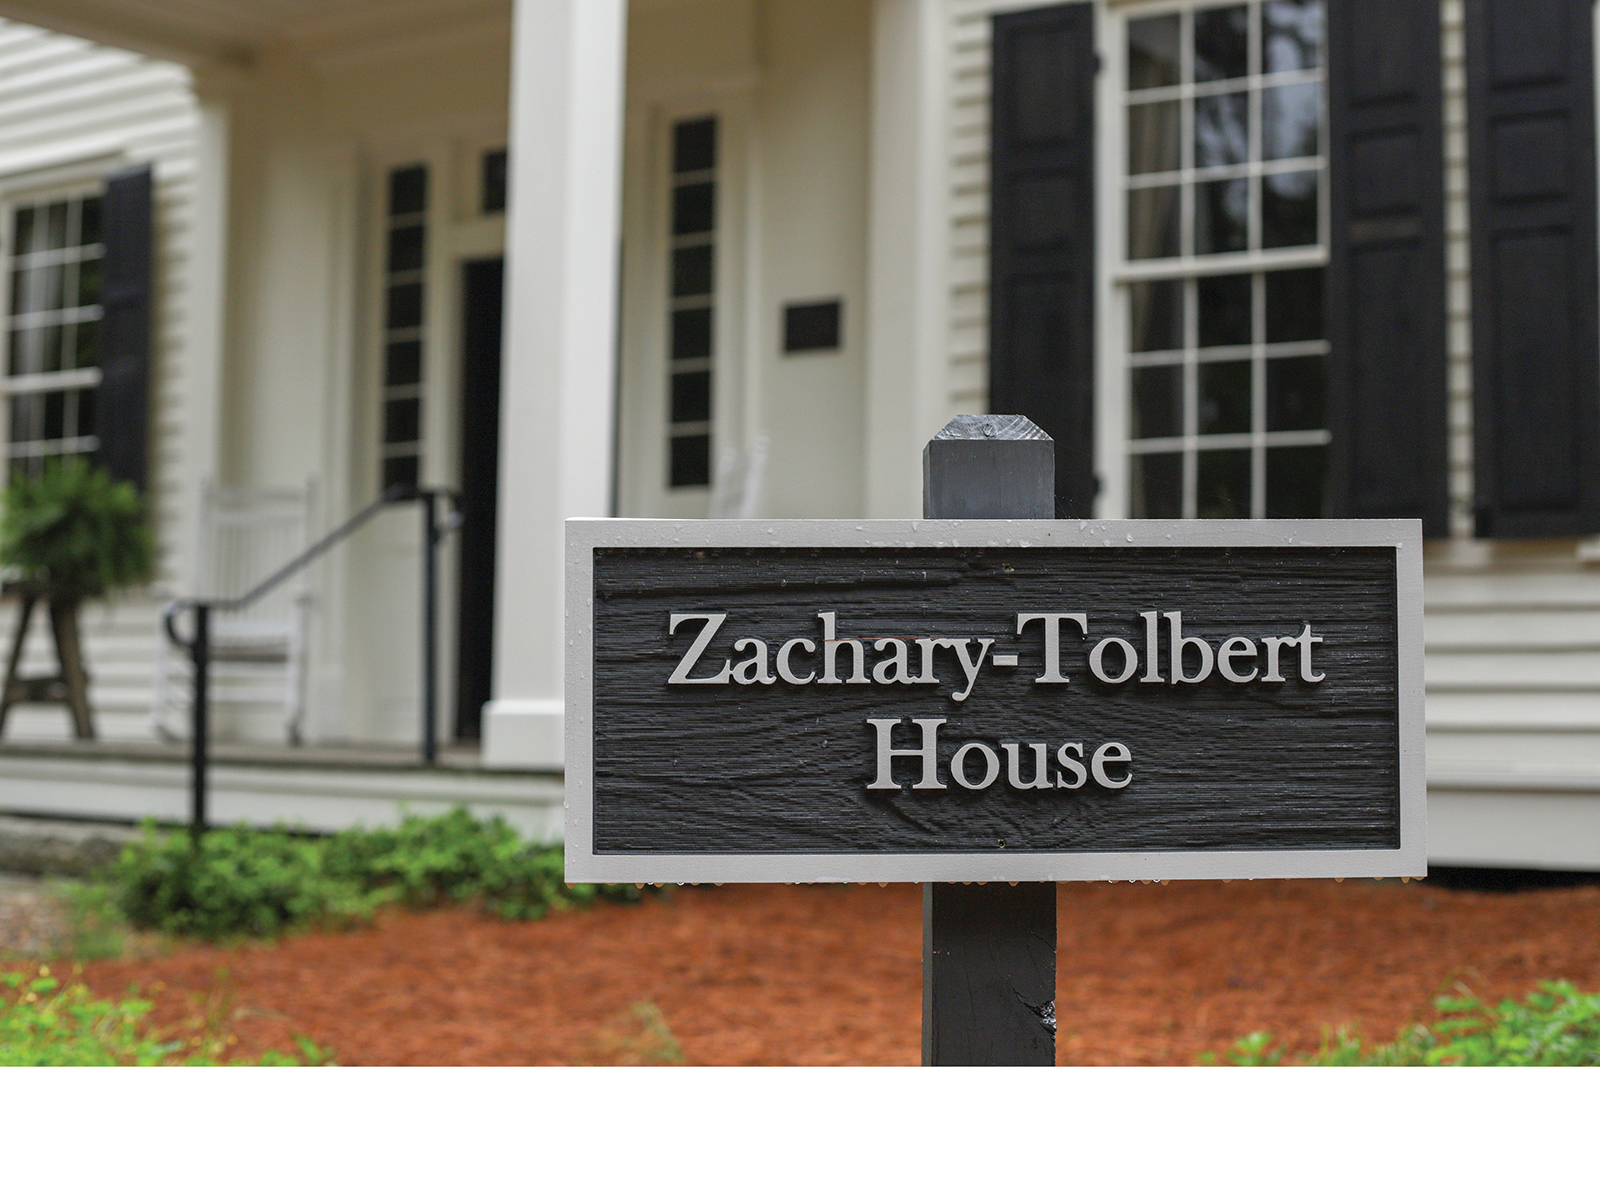 cashiers-nc-cashiers-historical-society-zachary-tolbert-house